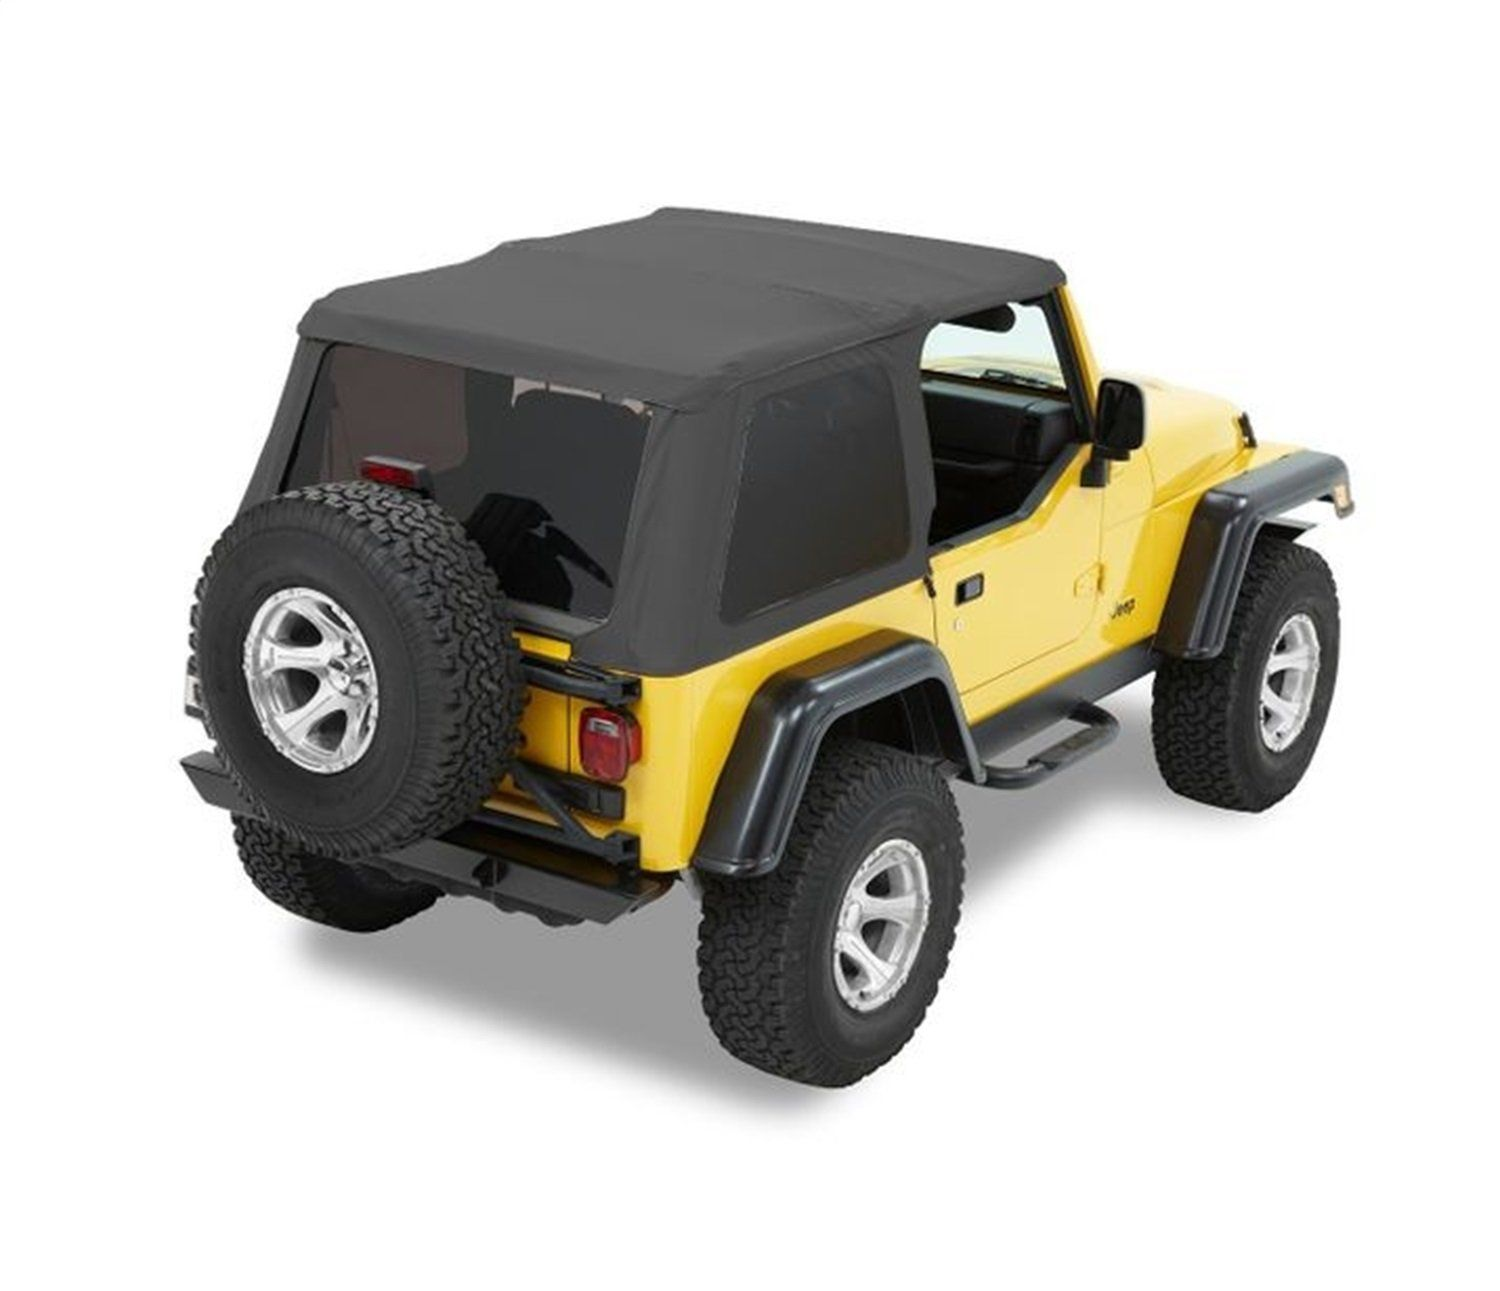 Amazon Com Bestop 56820 15 Black Denim Trektop Nx Complete Frameless Replacement Soft Top With Sunrider Sunroof Feature With Images Soft Tops Jeep Wrangler Tj Wrangler Tj